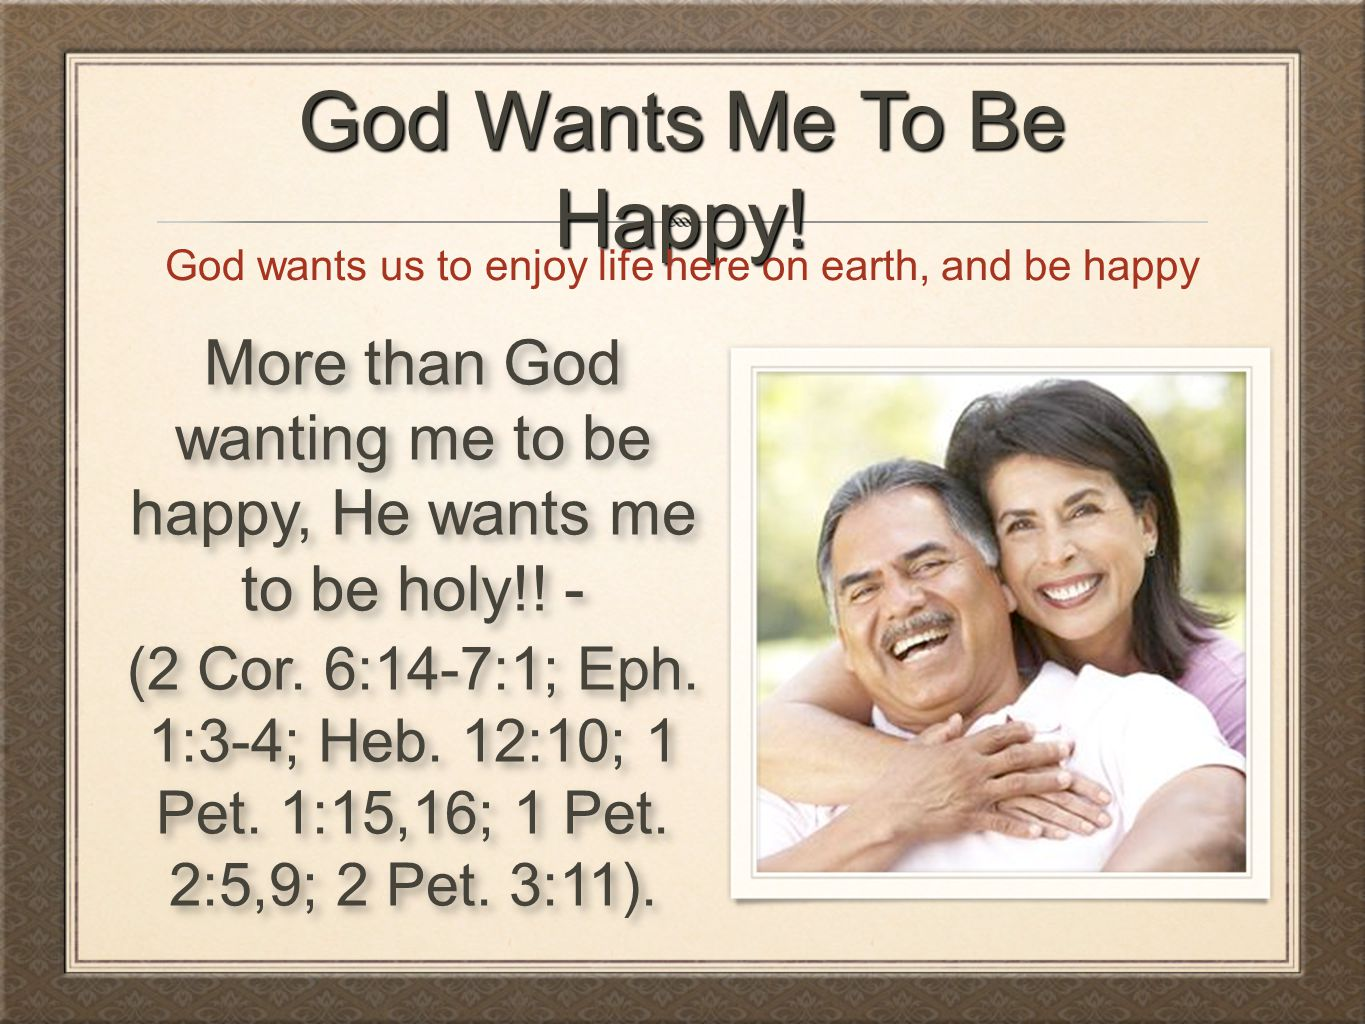 God Wants Me To Be Happy! God wants us to enjoy life here on earth, and be happy.